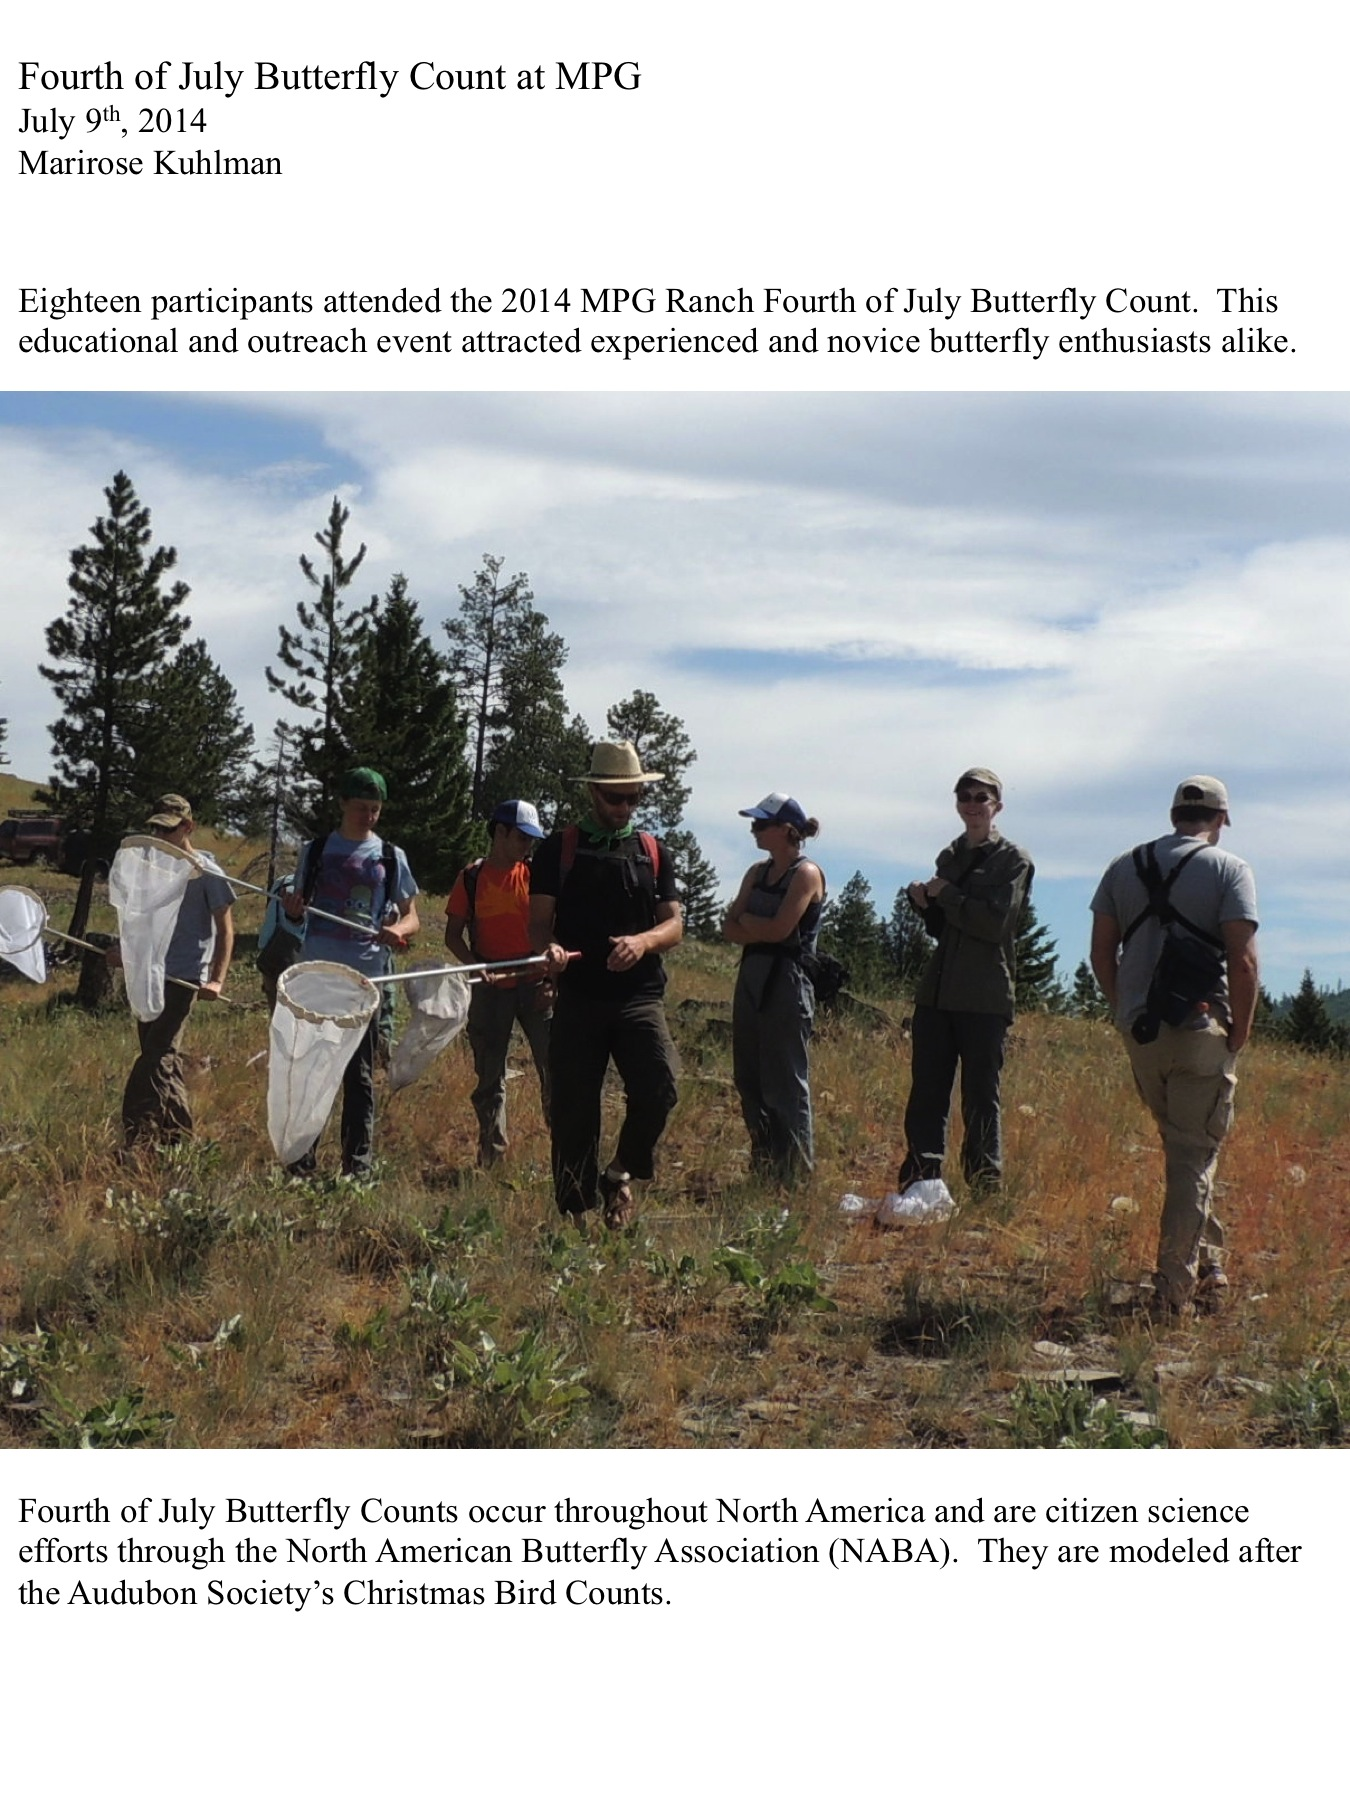 Eighteen participants attended the 2014 MPG Ranch Fourth of July Butterfly Count. This educational and outreach event attracted experienced and novice butterfly enthusiasts alike.